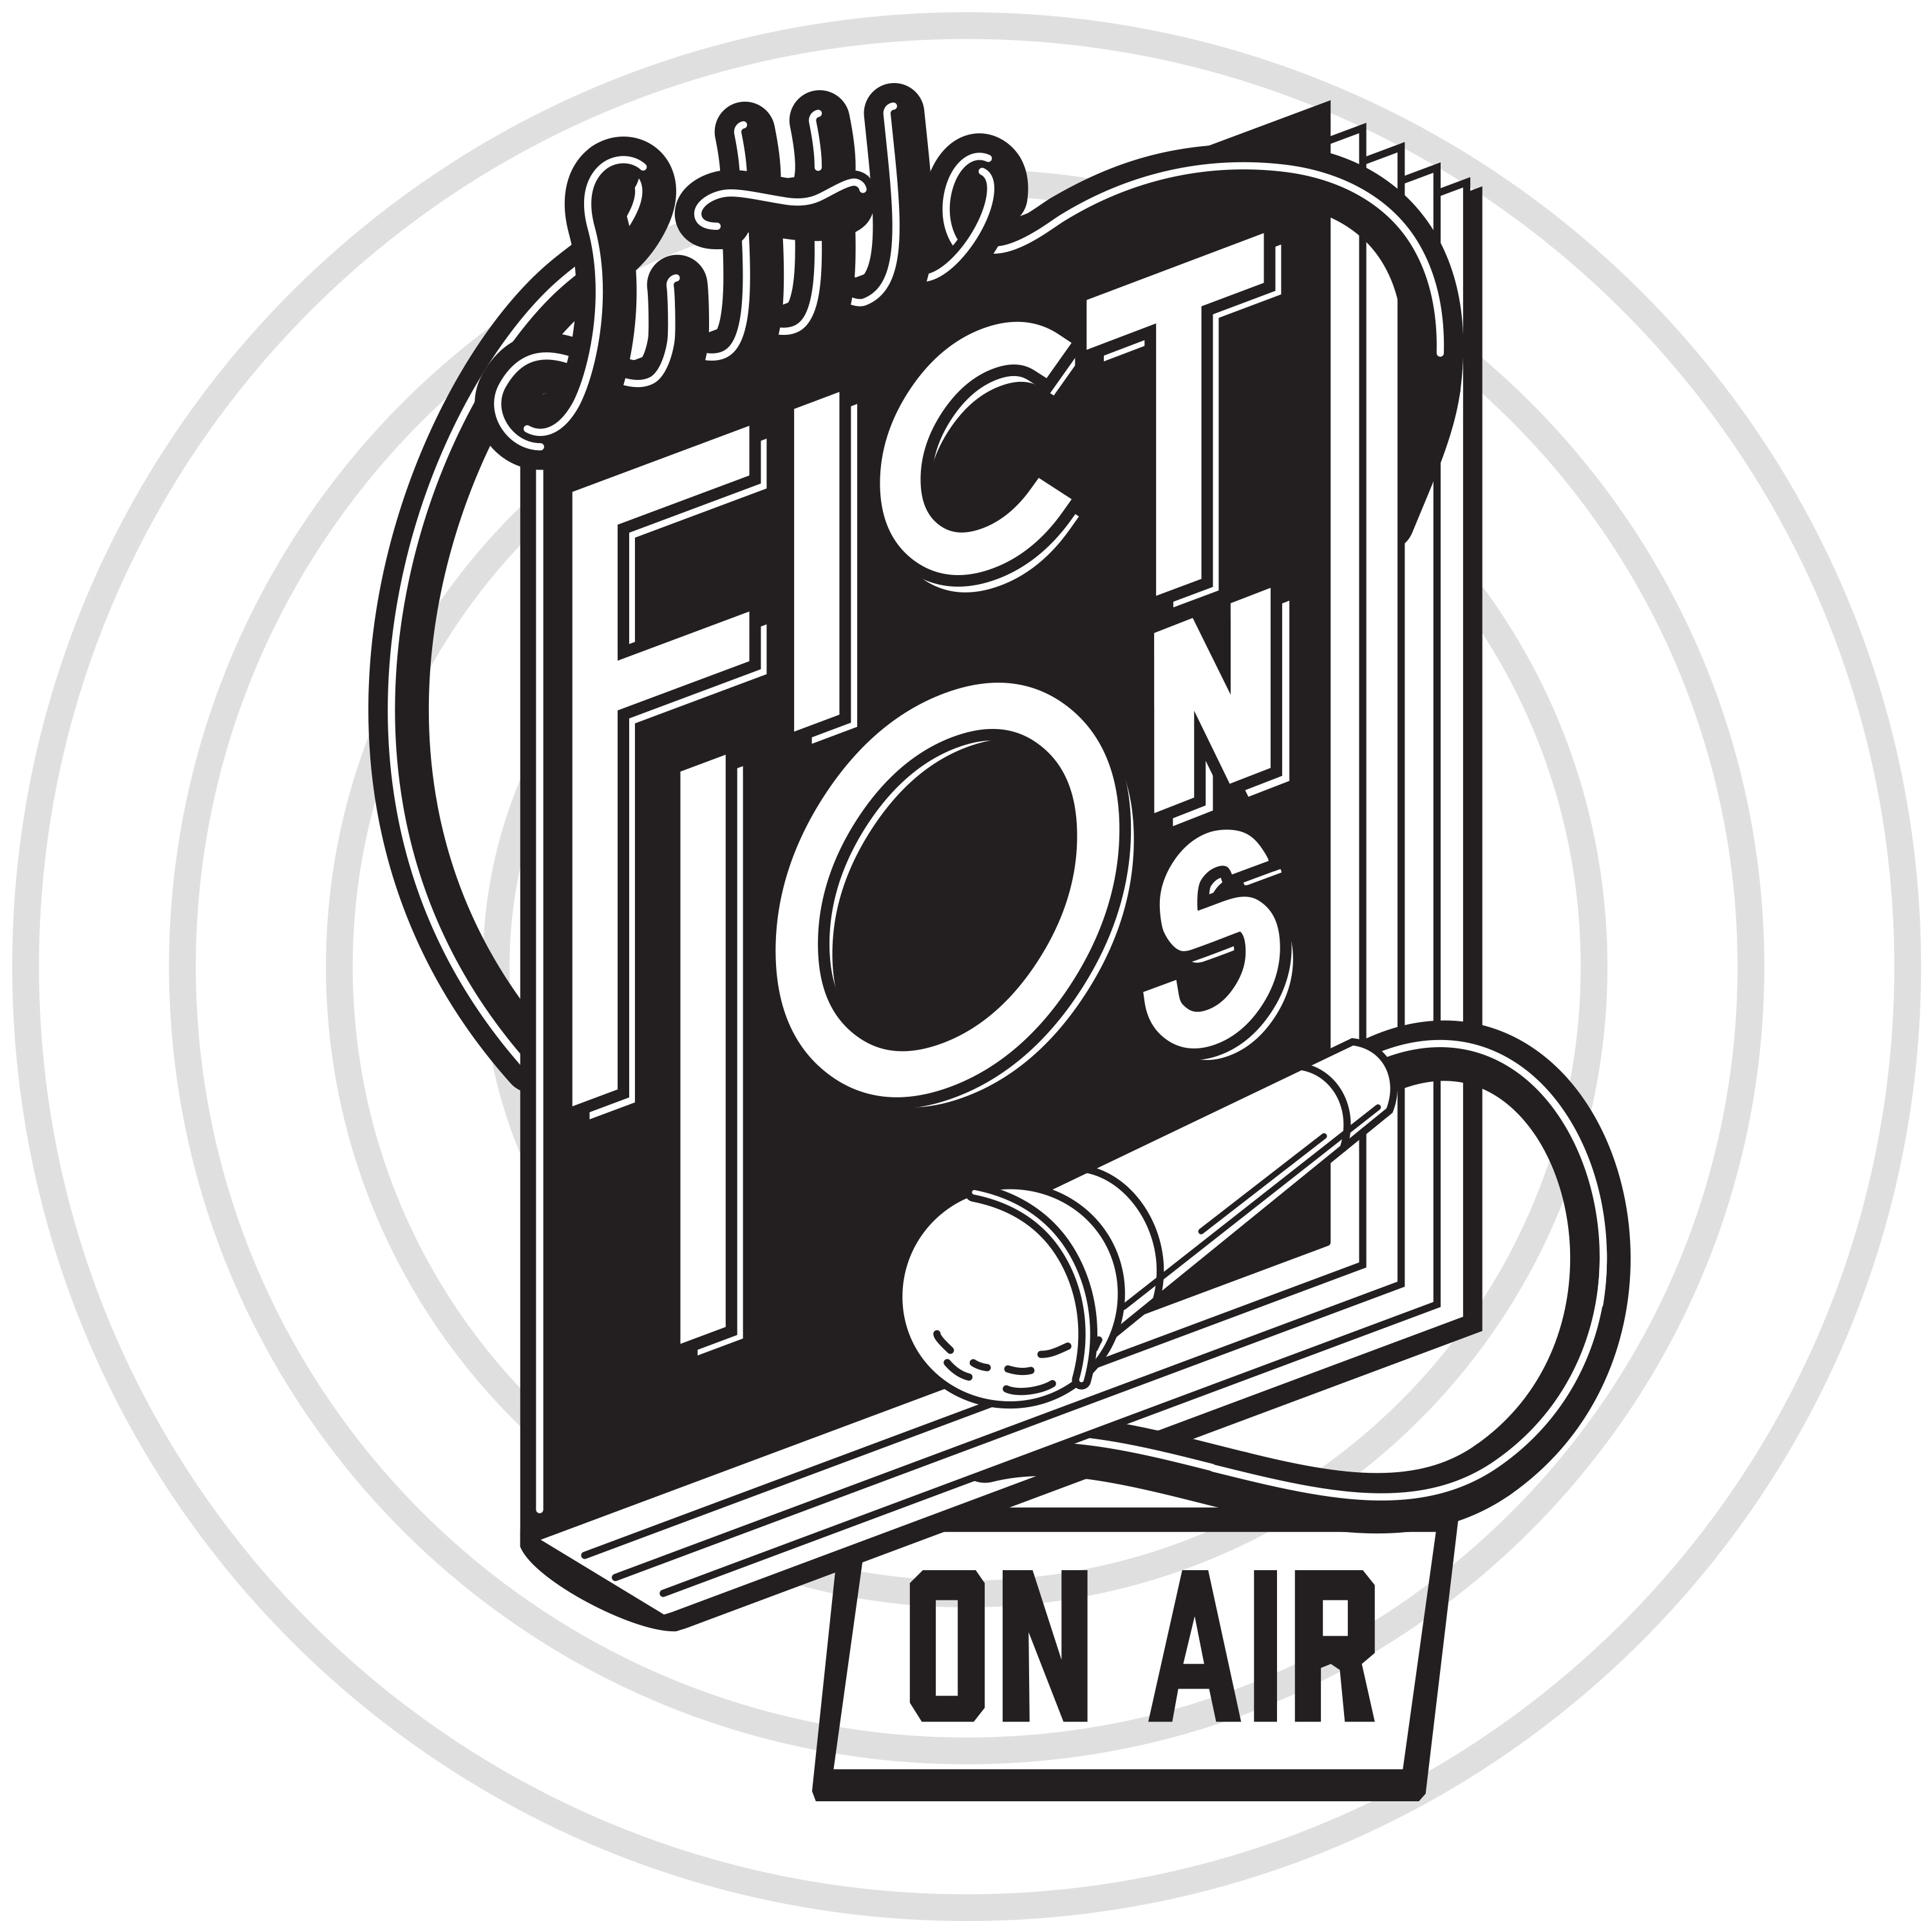 The logo of Little Fictions